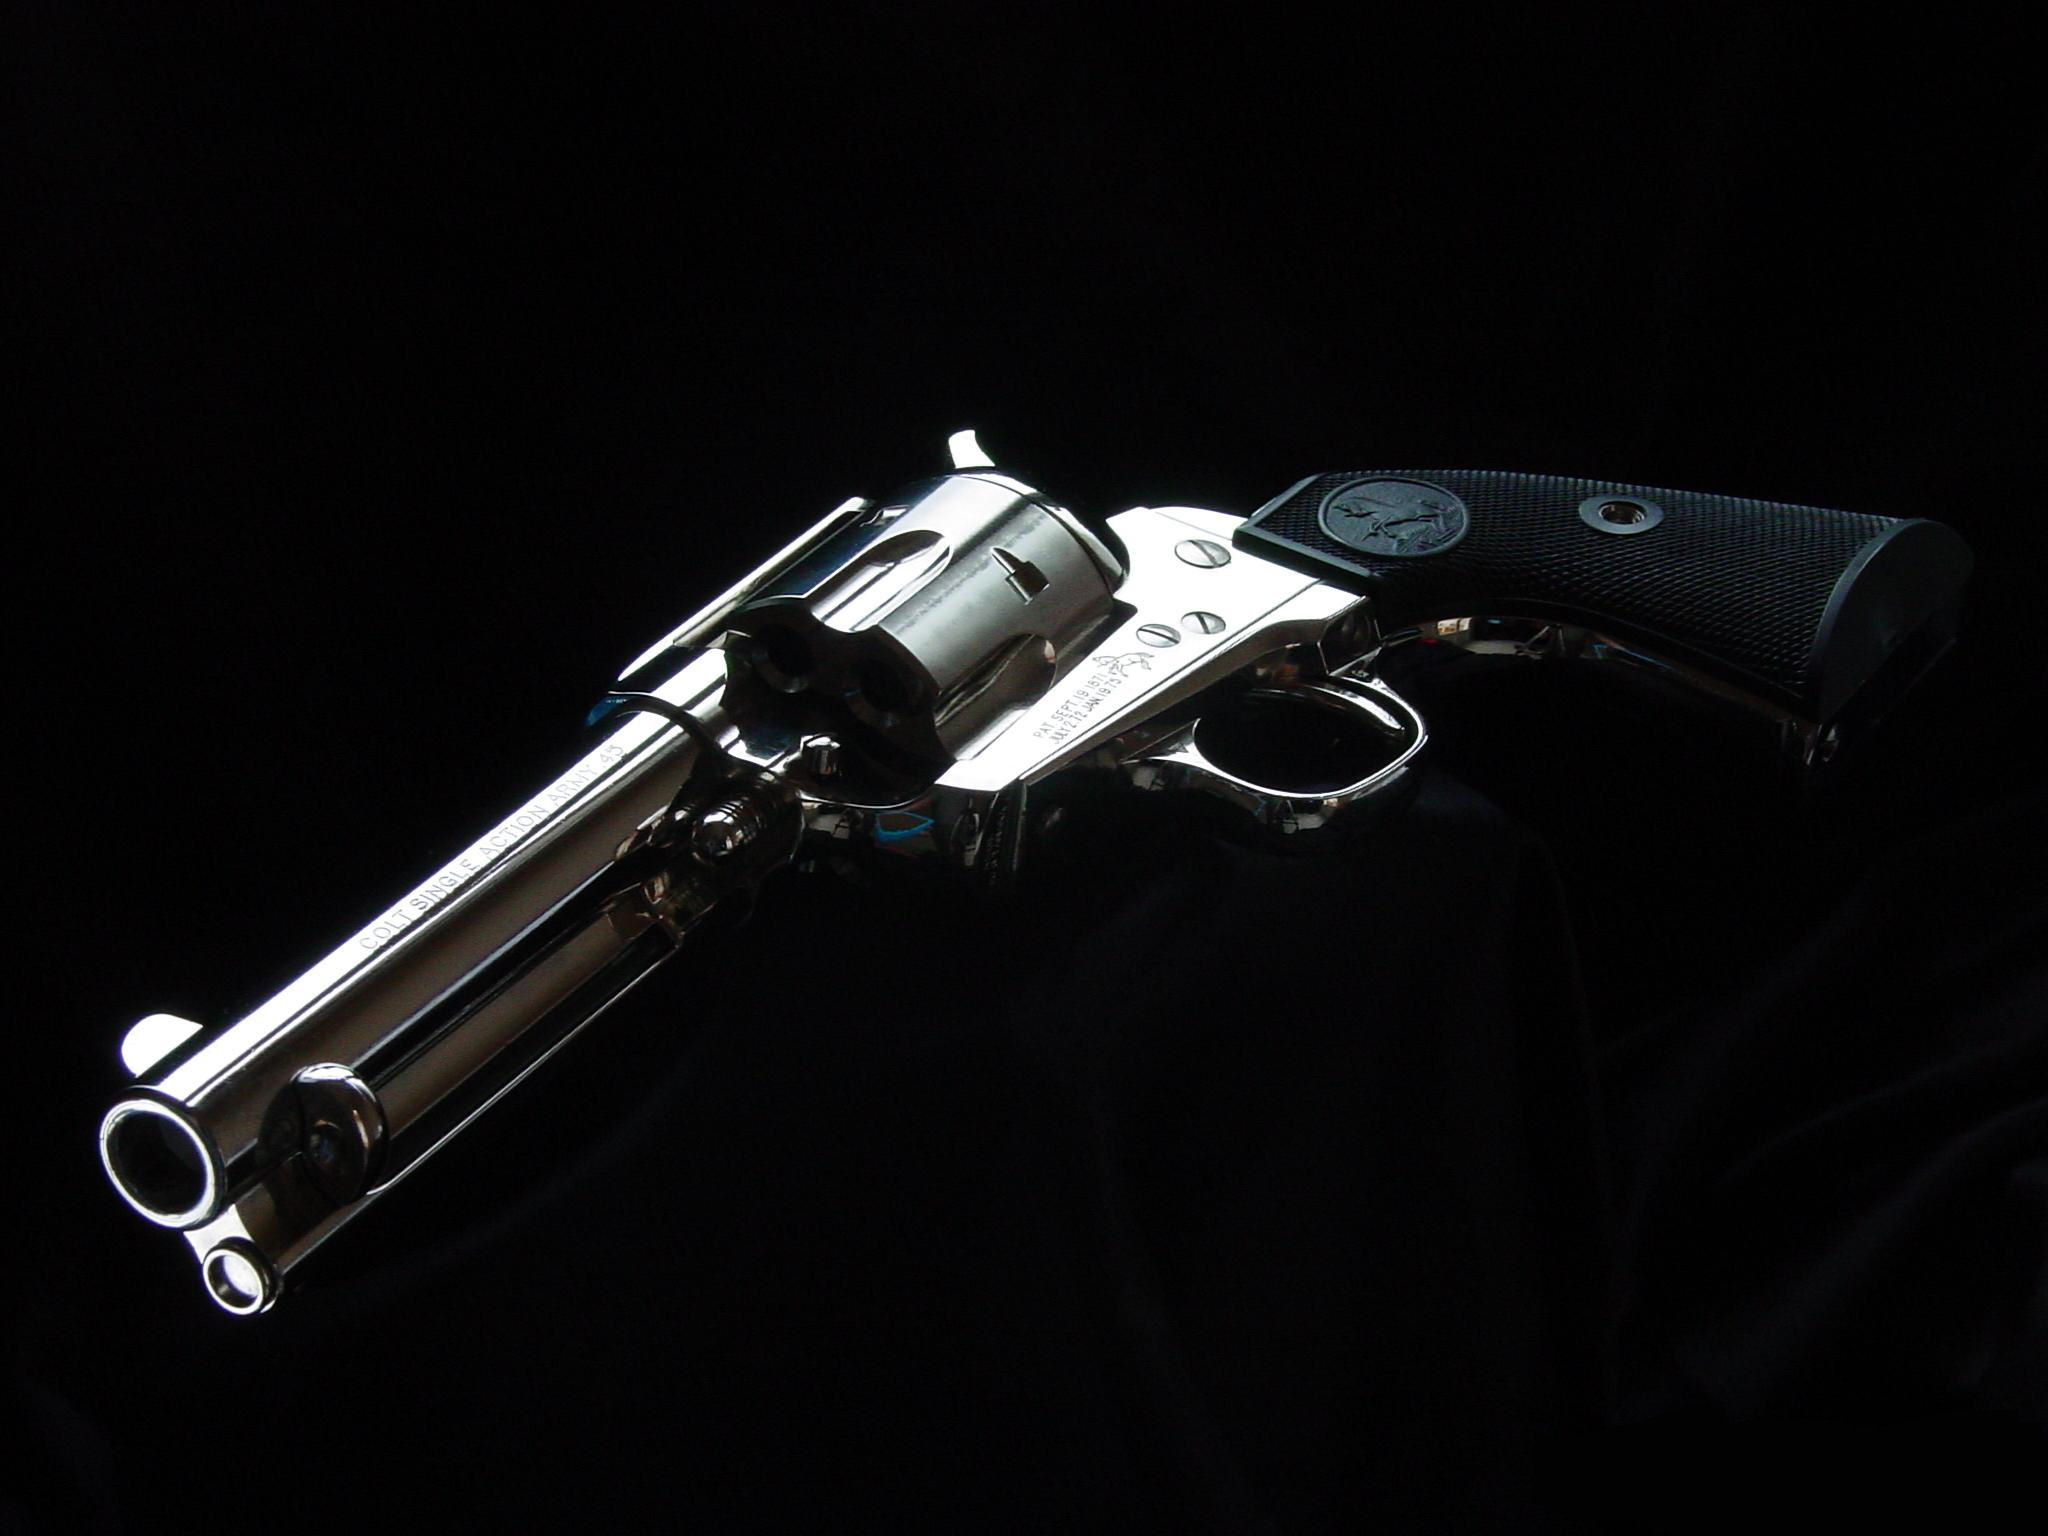 Weapons - Colt Revolver Wallpaper